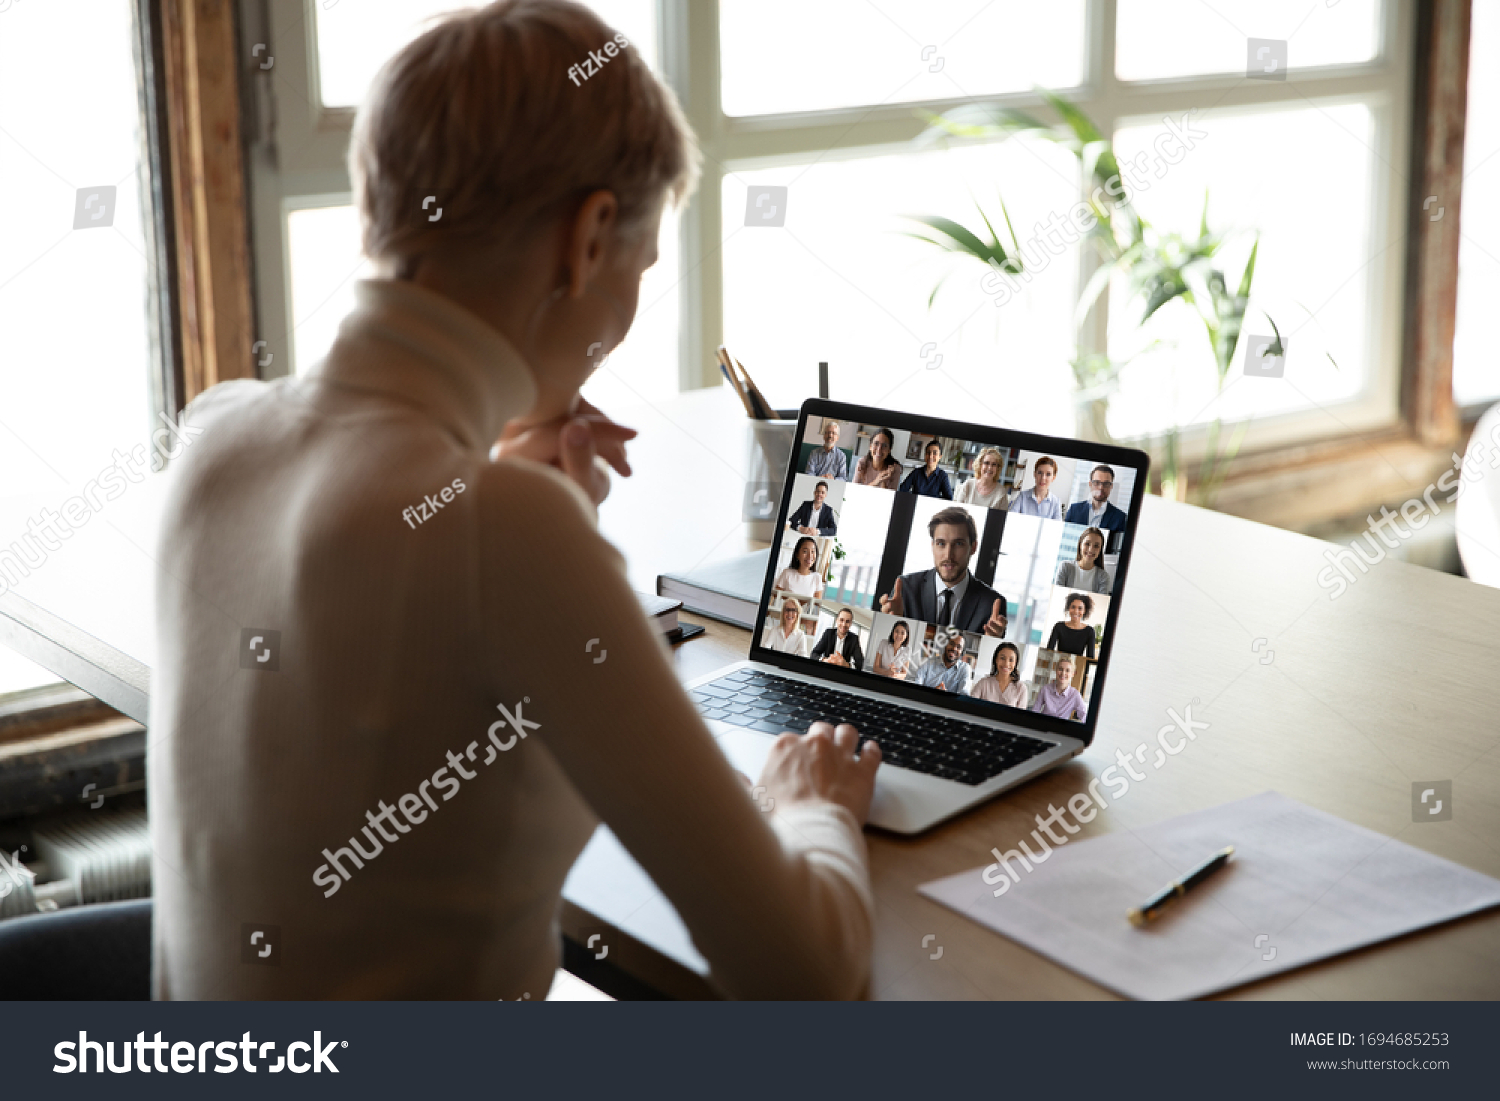 Rear view woman sit at desk learns new videoconference app online review, look at pc screen take part in group video call with corporate staff brainstorm distantly, study, work use modern tech concept #1694685253